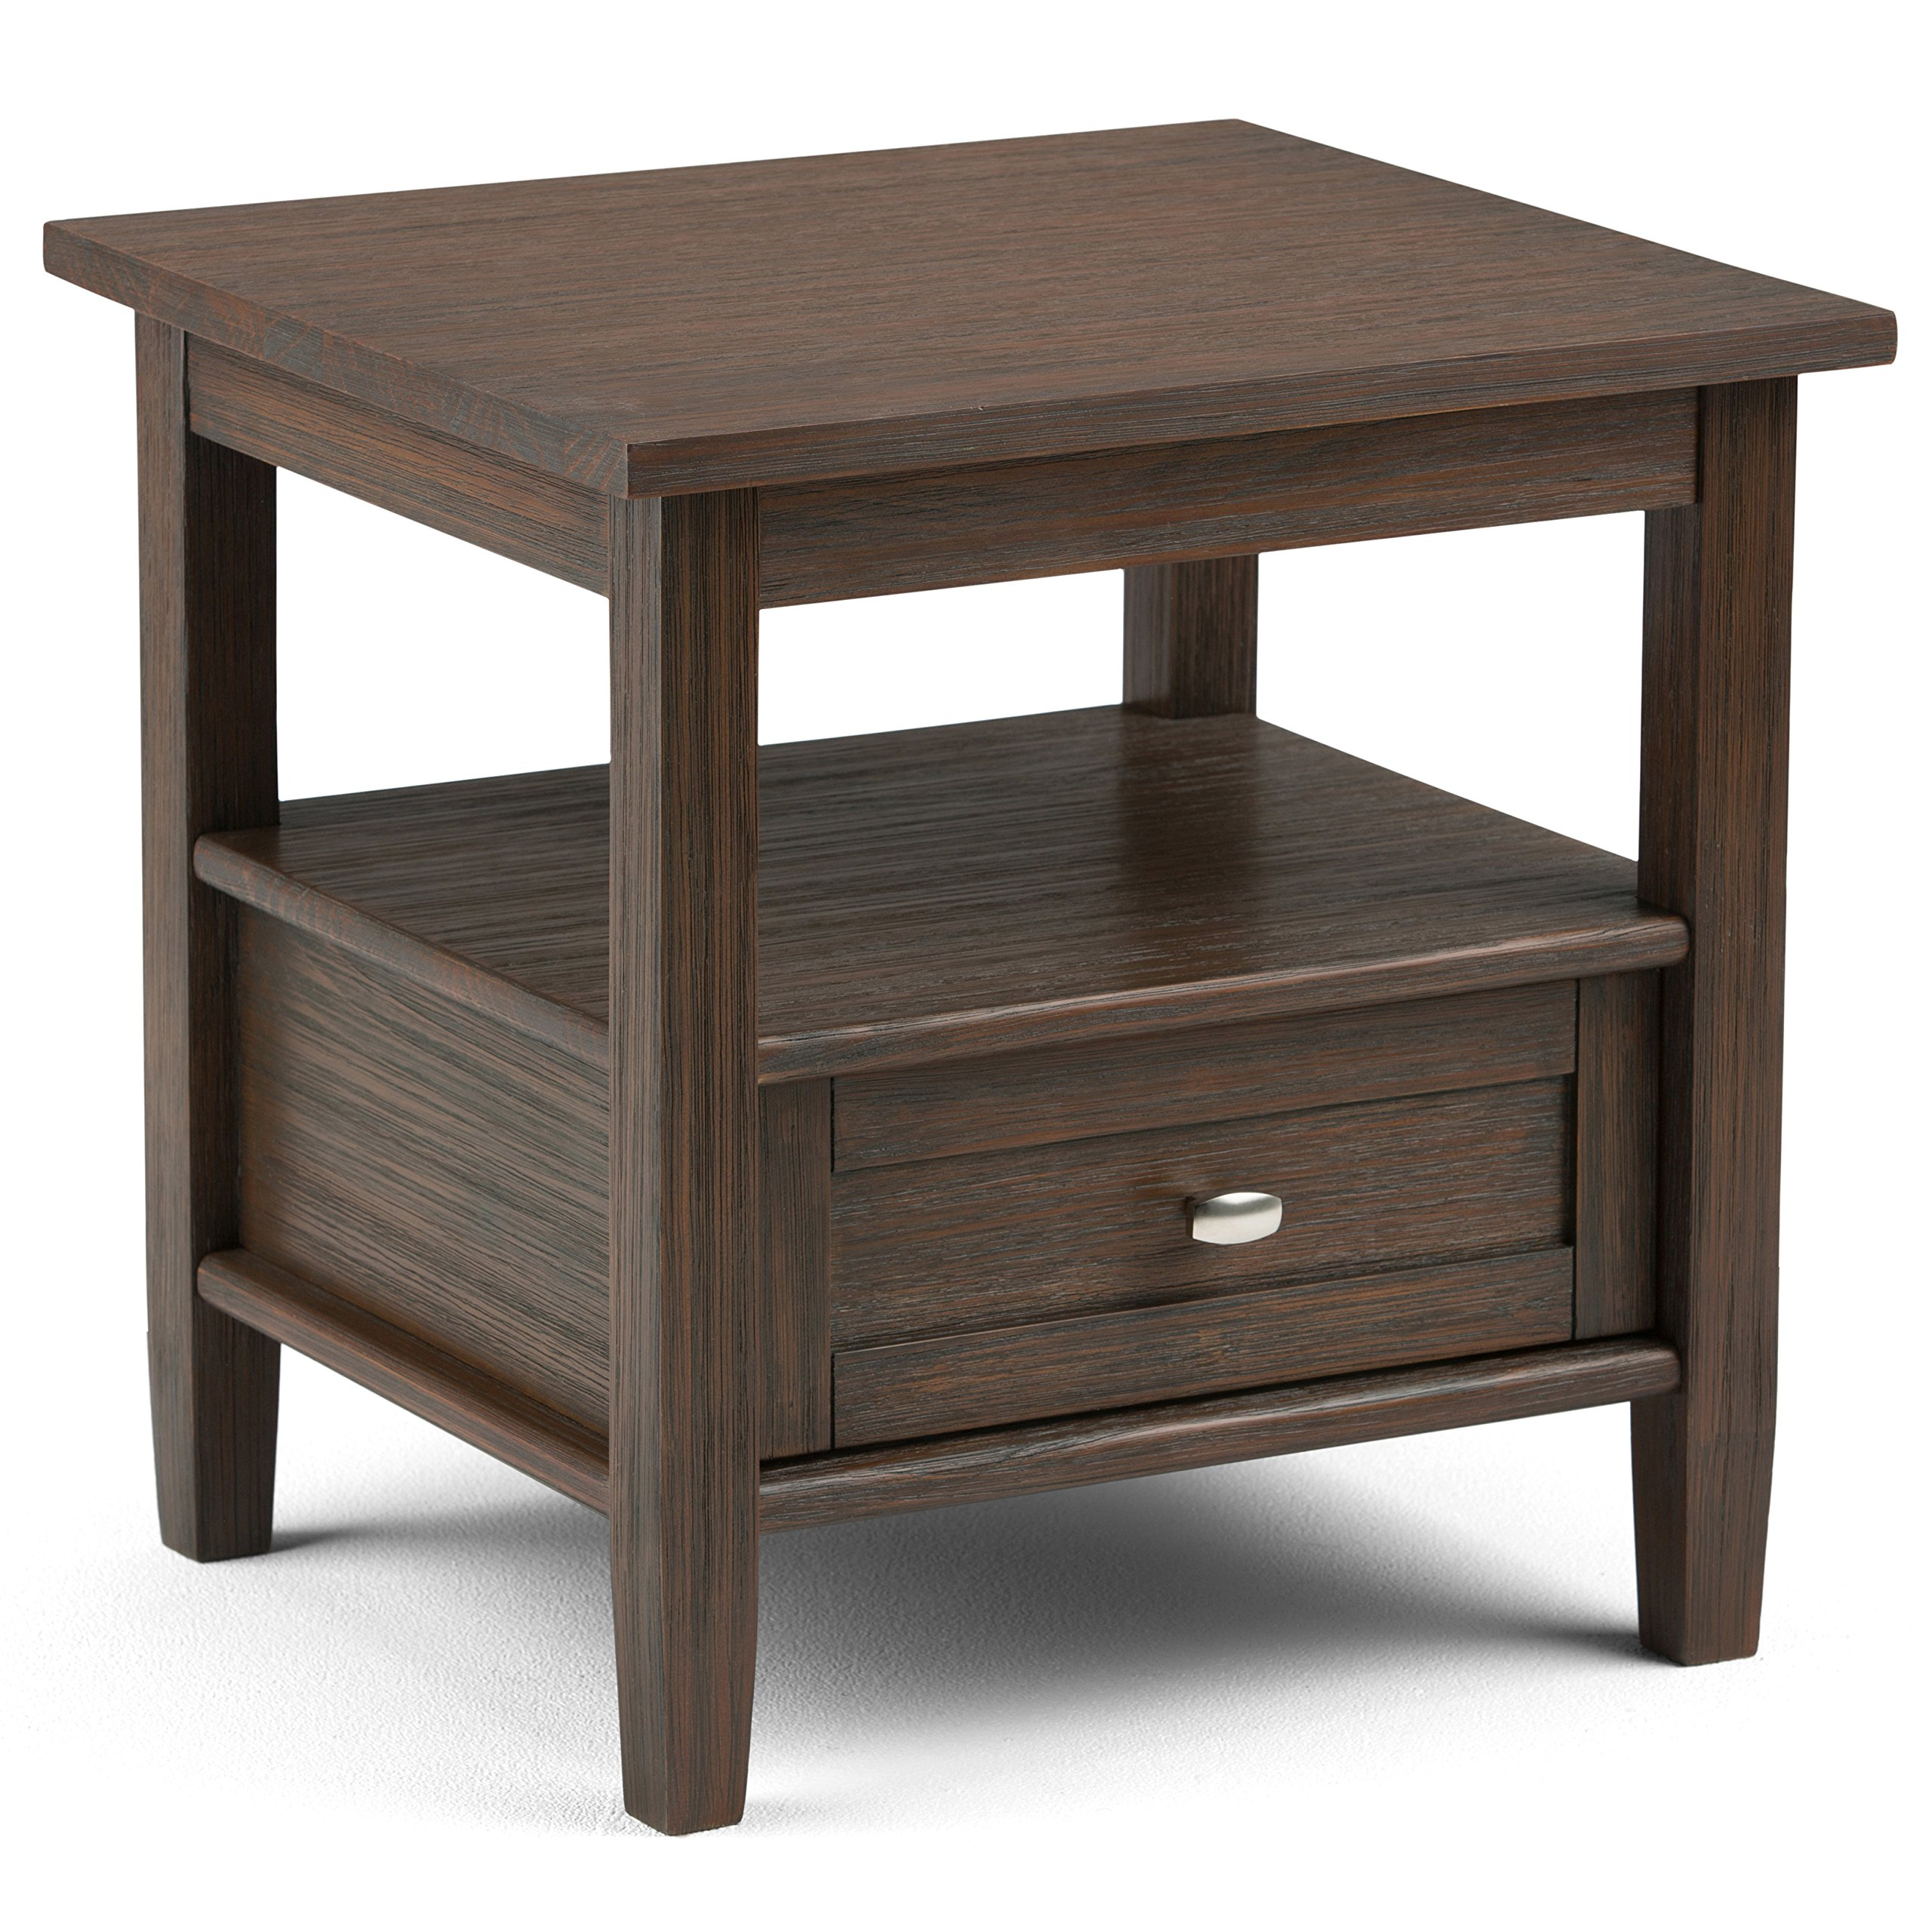 Simpli Home AXWSH002-FB Warm Shaker Solid Wood 20 inch wide Rustic End Side Table in Farmhouse Brown by Simpli Home